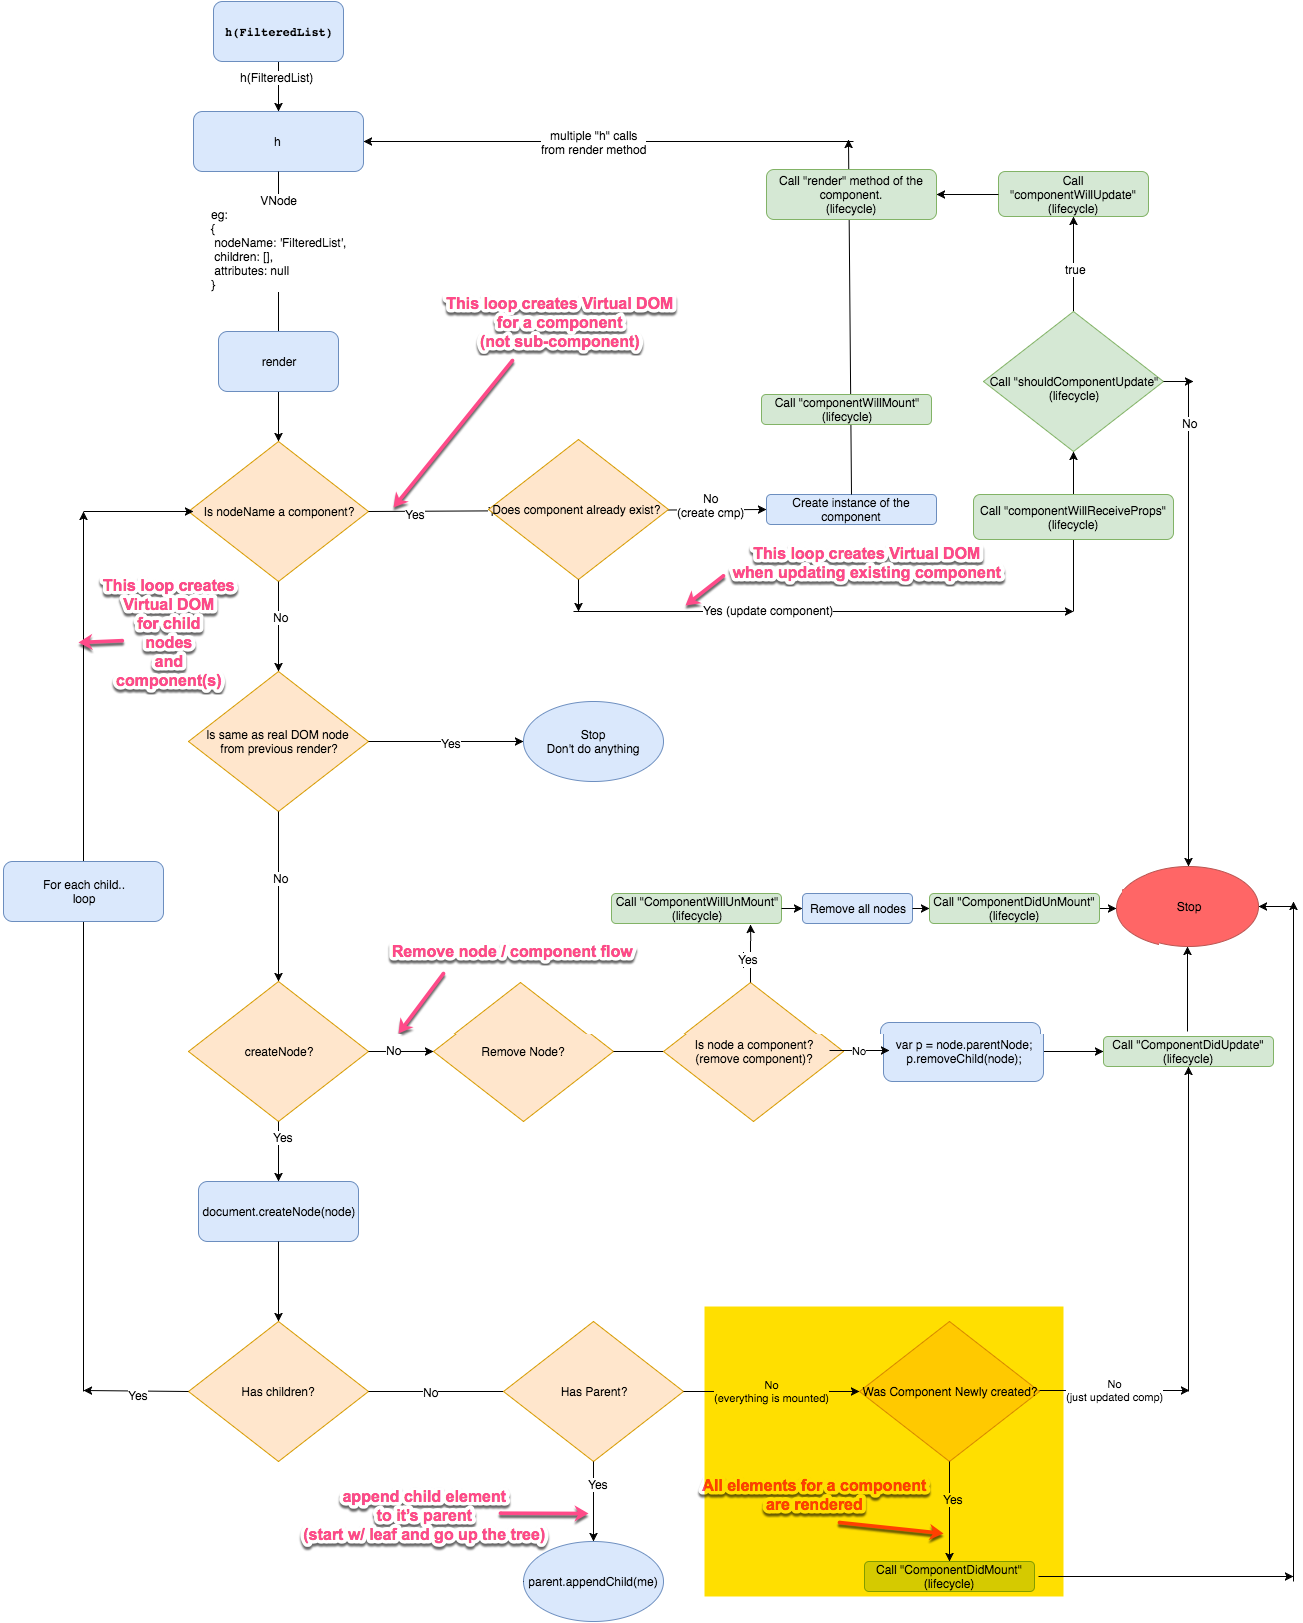 The Inner Workings Of Virtual Dom Rajaraodv Medium Process Flow Diagram Using Javascript Important Note Once Everything Is Done A Reference To Real Added Each Component Instances This Used For Remaining